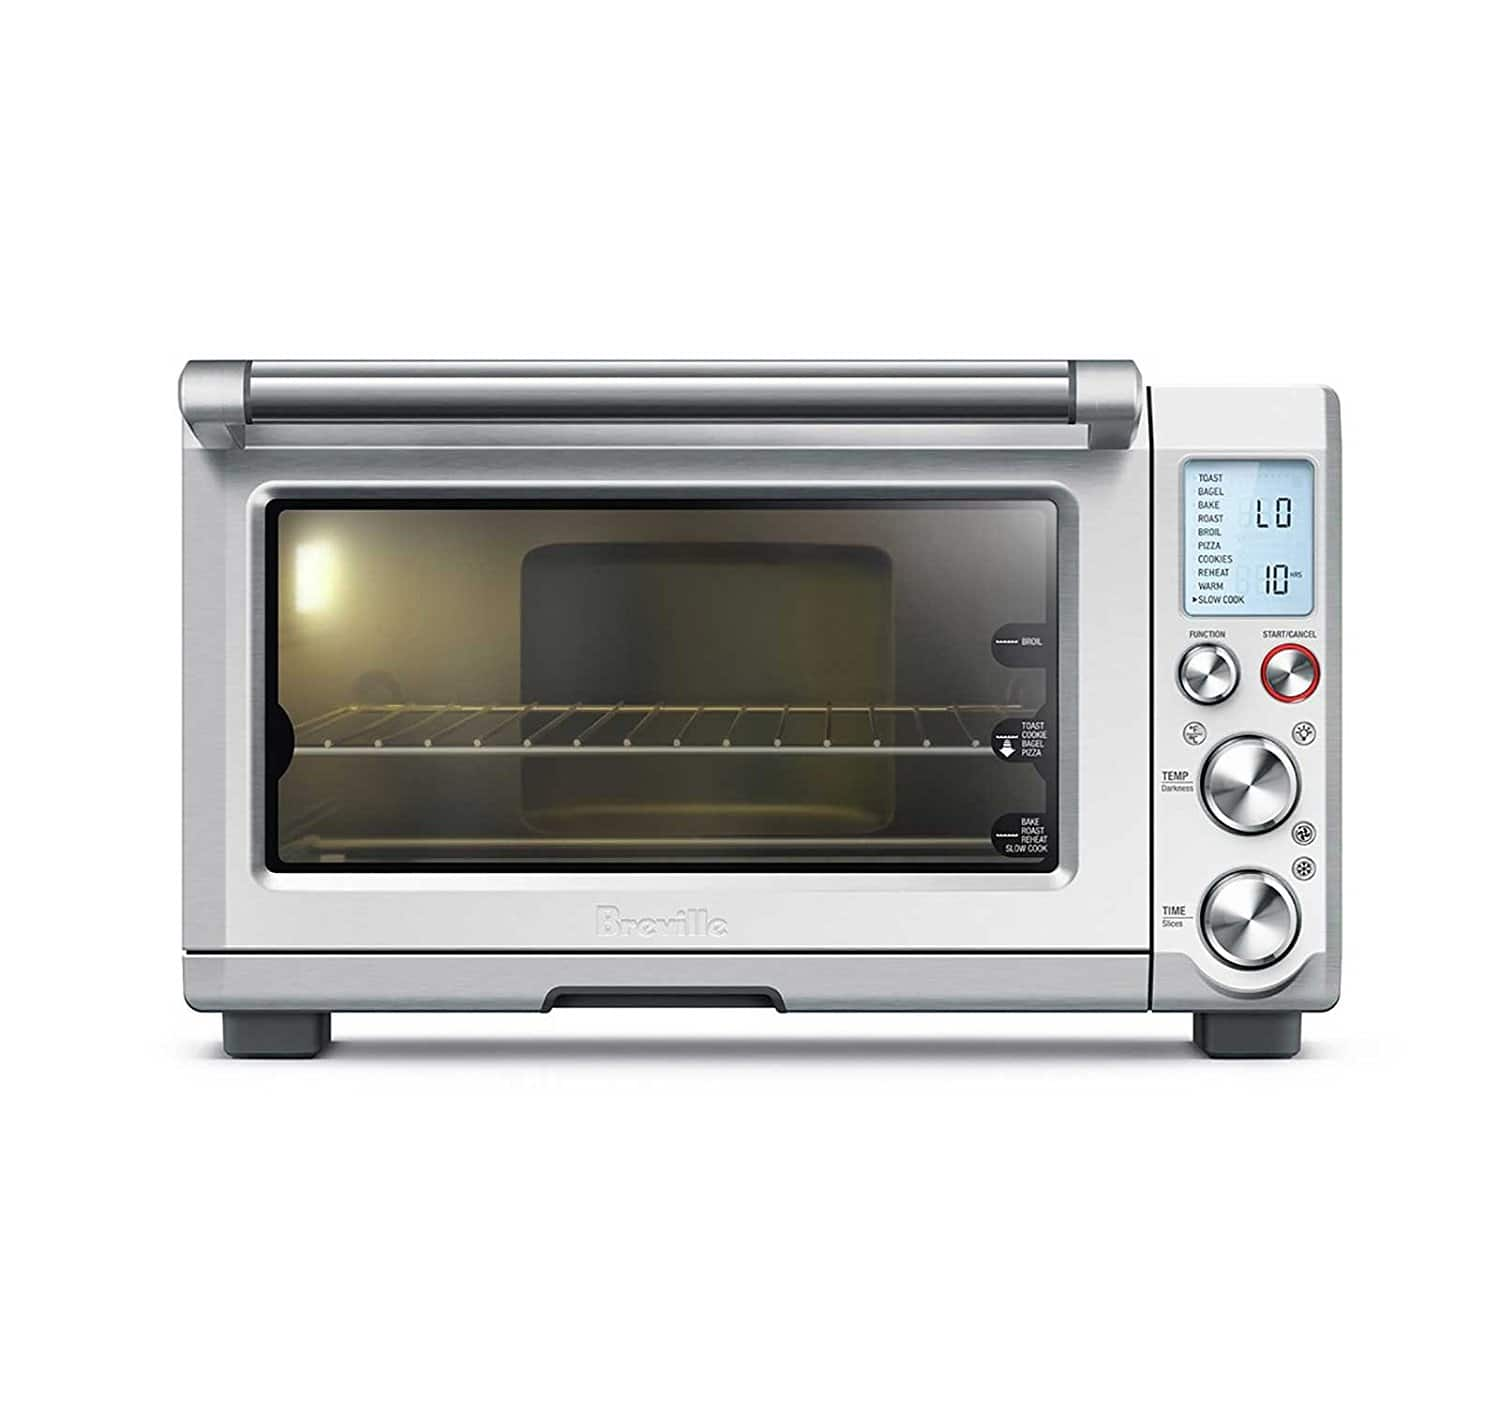 Breville BOV845BSS Smart Convection Oven Pro $172.76 YMMV